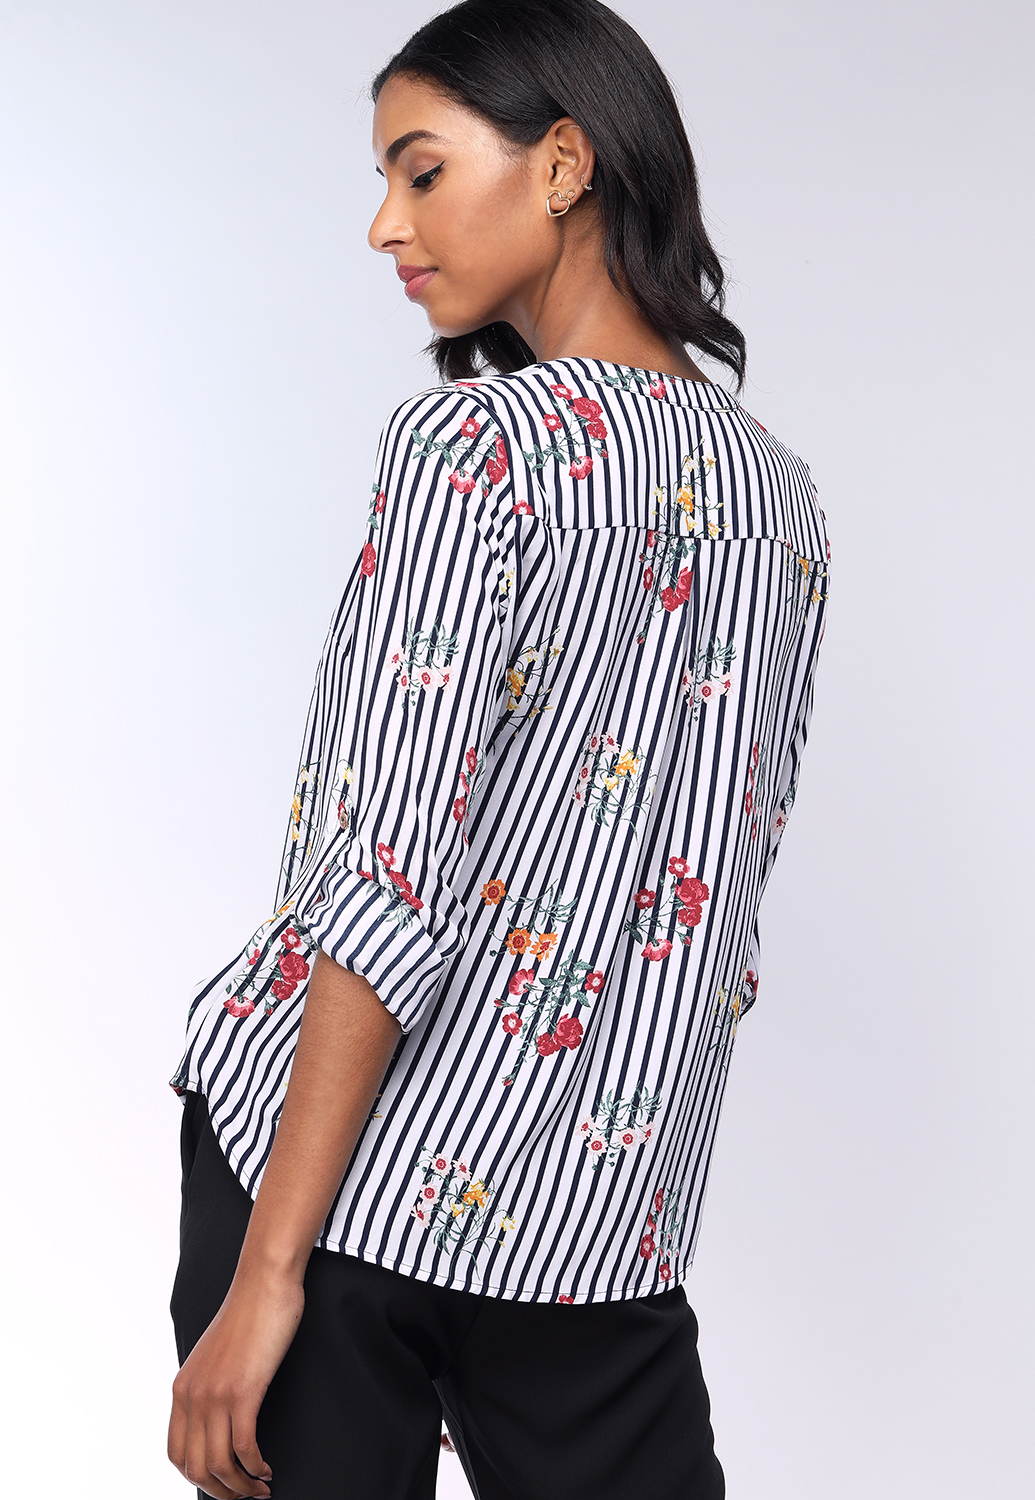 Floral Pinstriped Dressy Top